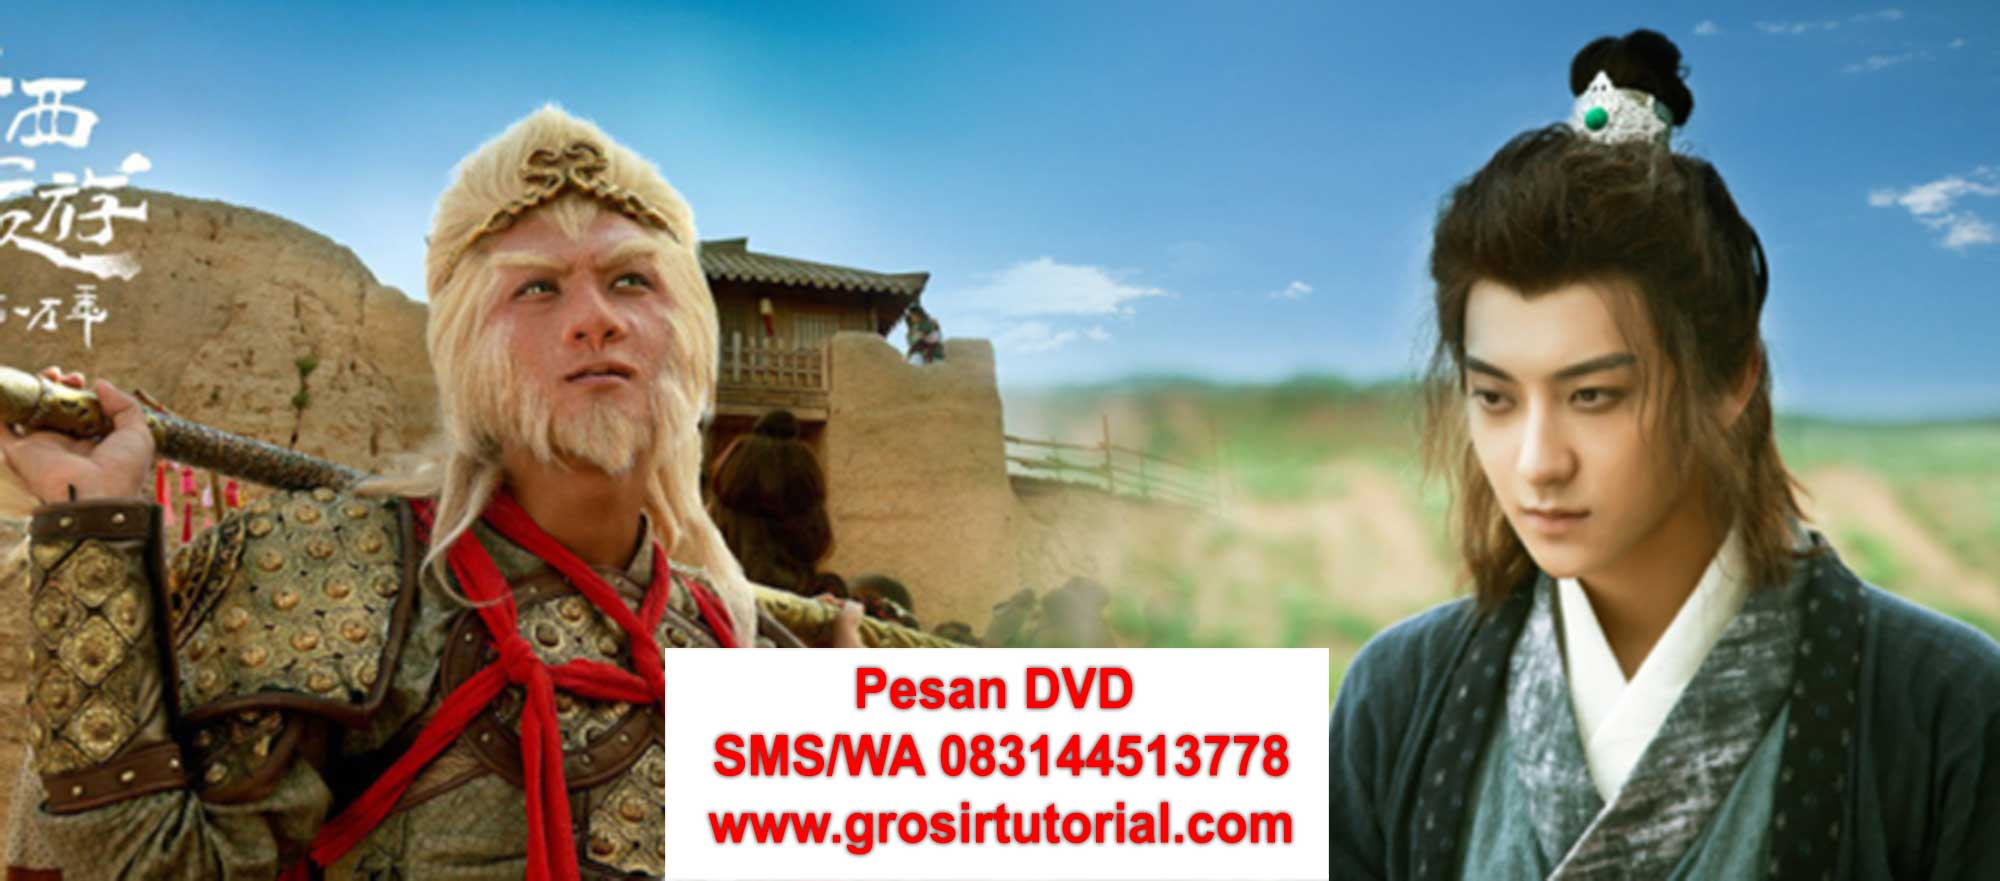 PESAN-dvd-MANDARIN-A-Chinese-Oddyssey-Love-of-Eternity